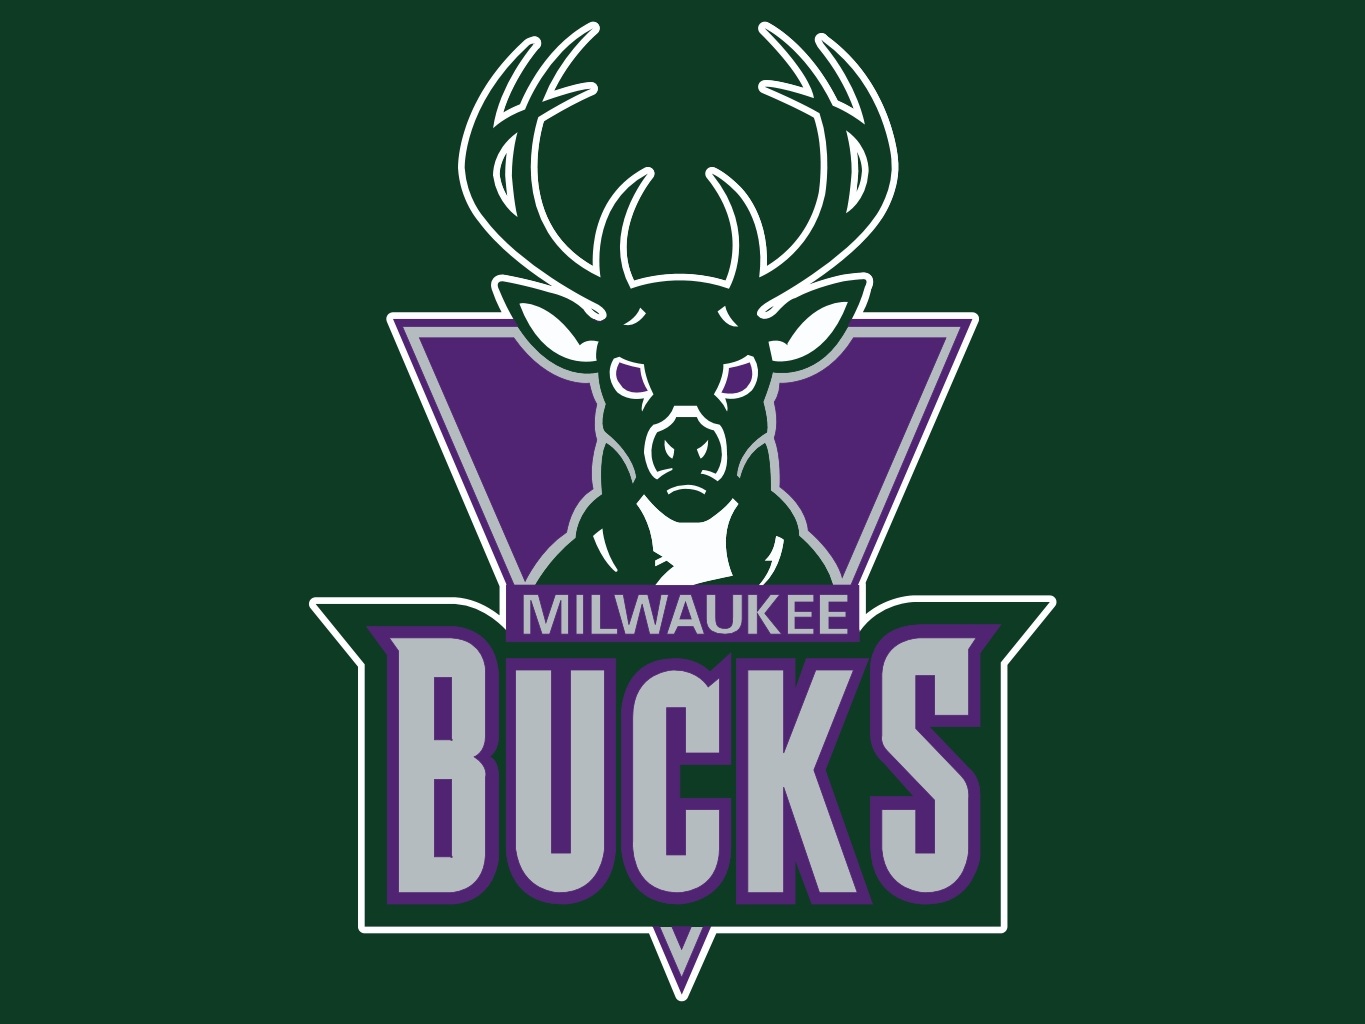 45+] Milwaukee Bucks Wallpaper New Logo on WallpaperSafari.